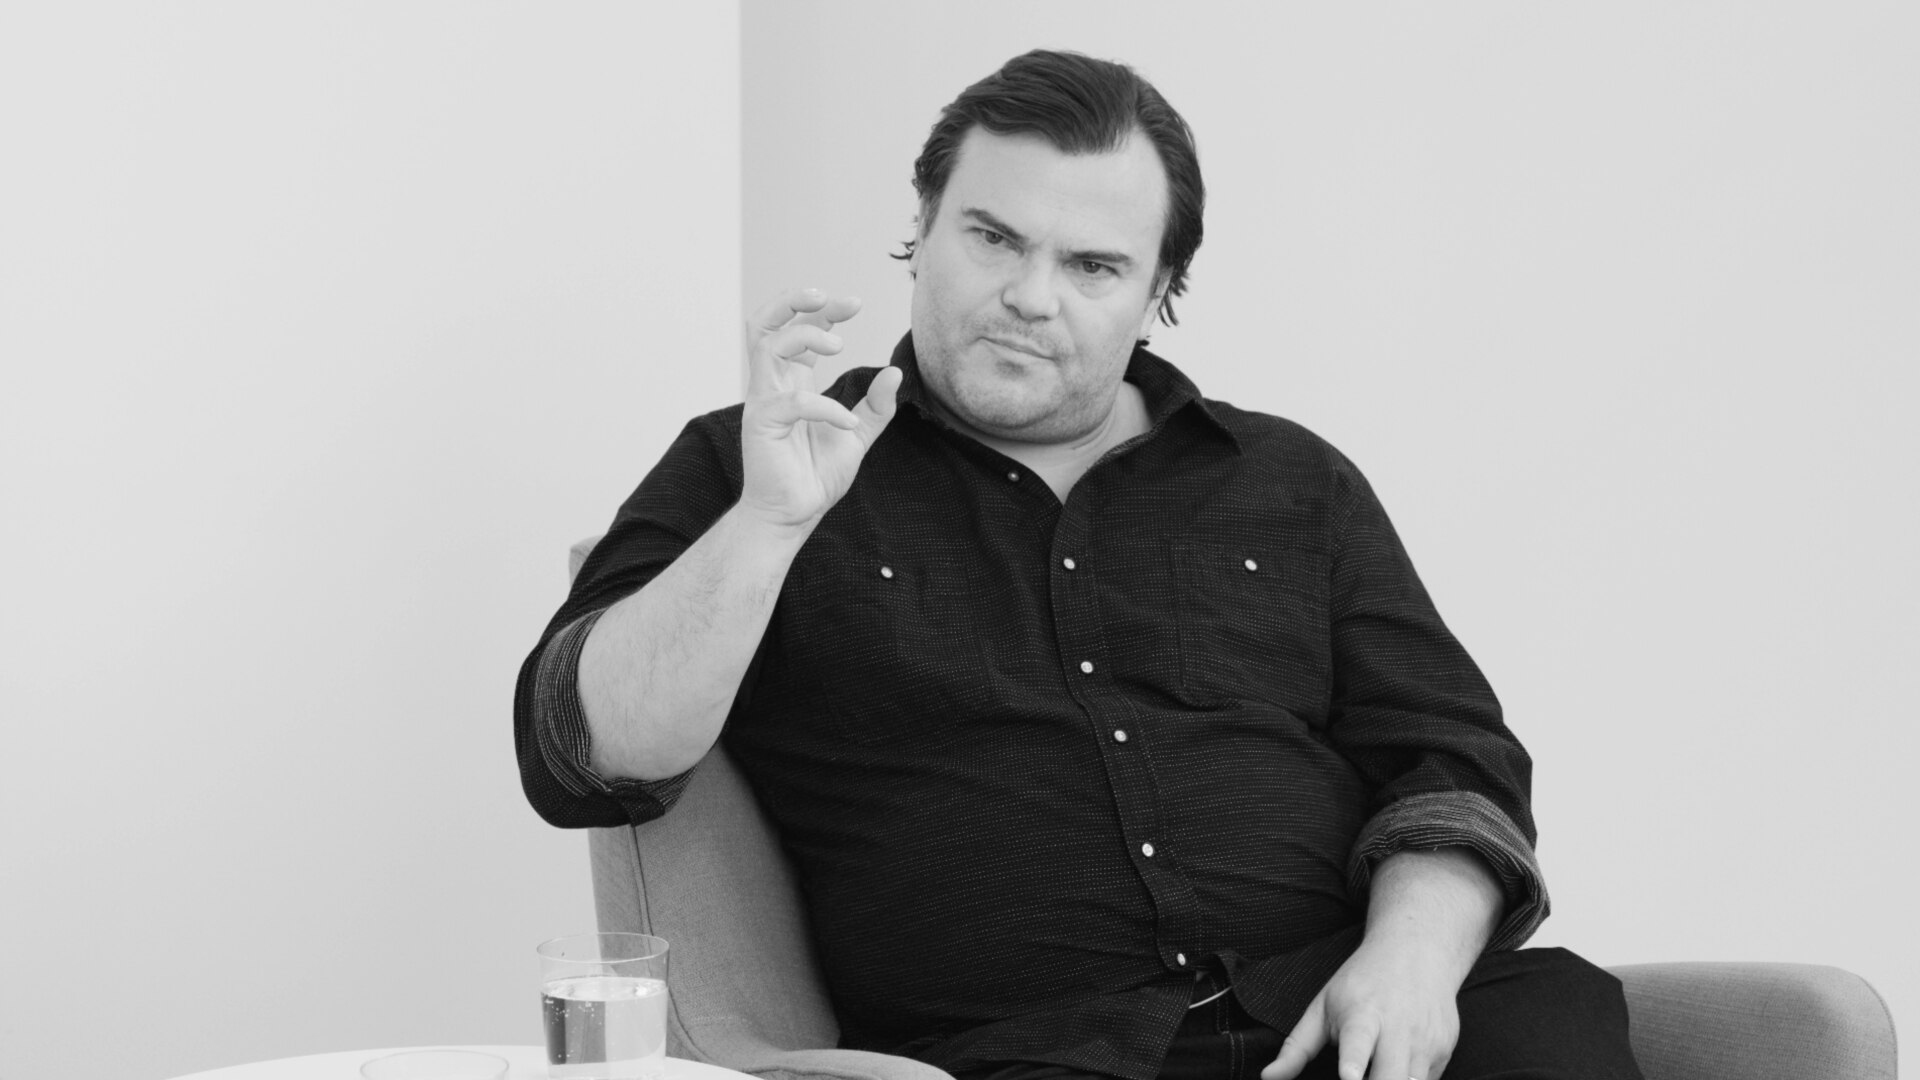 Jack Black: Off Camera With Sam Jones